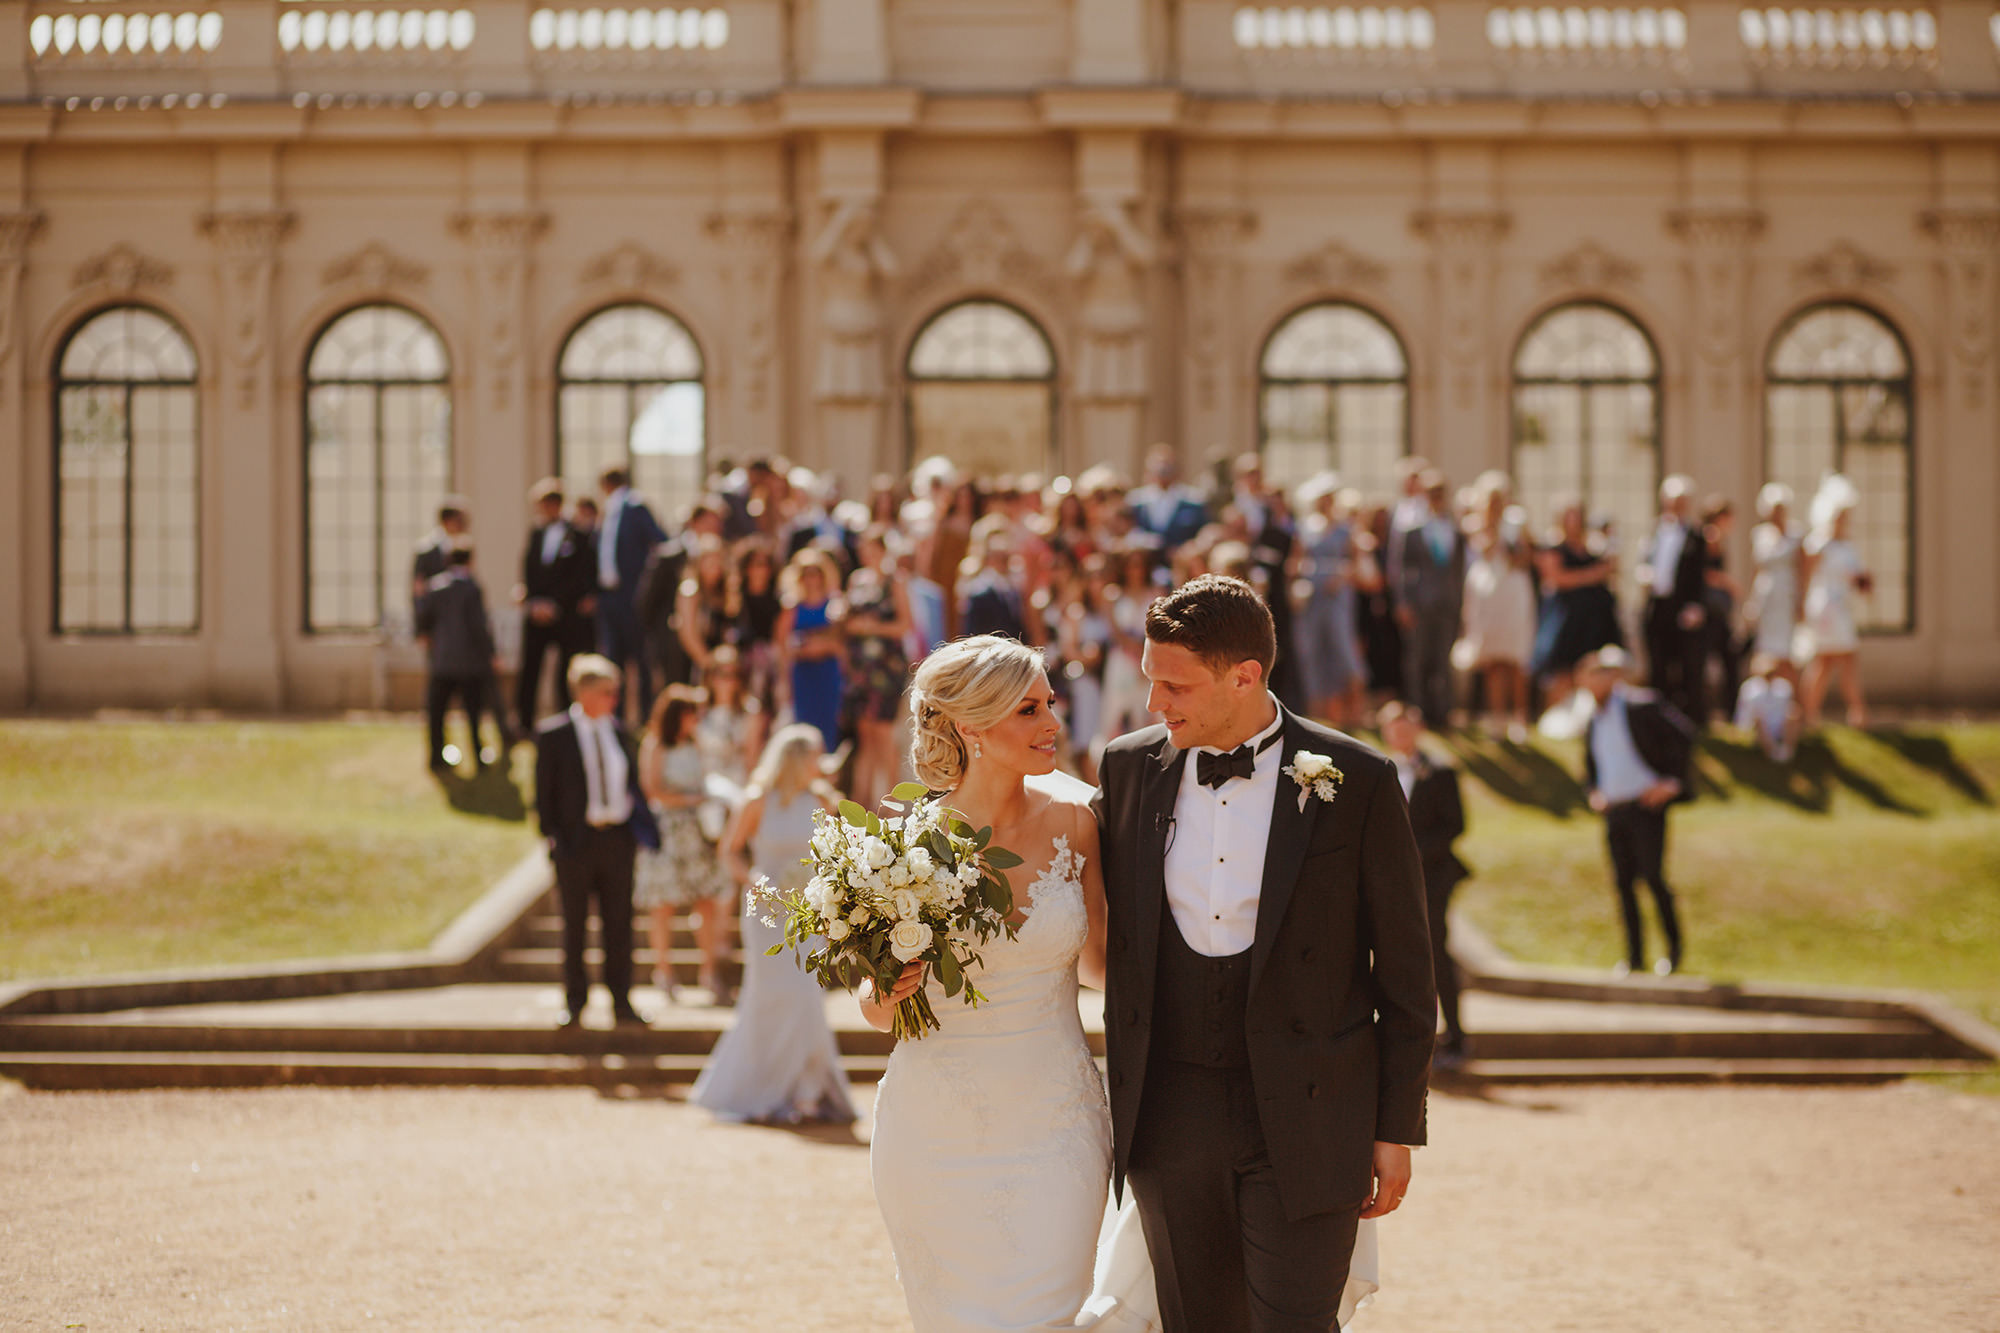 Wrest Park front entrance couple leaving ceremony - photo by Motiejus